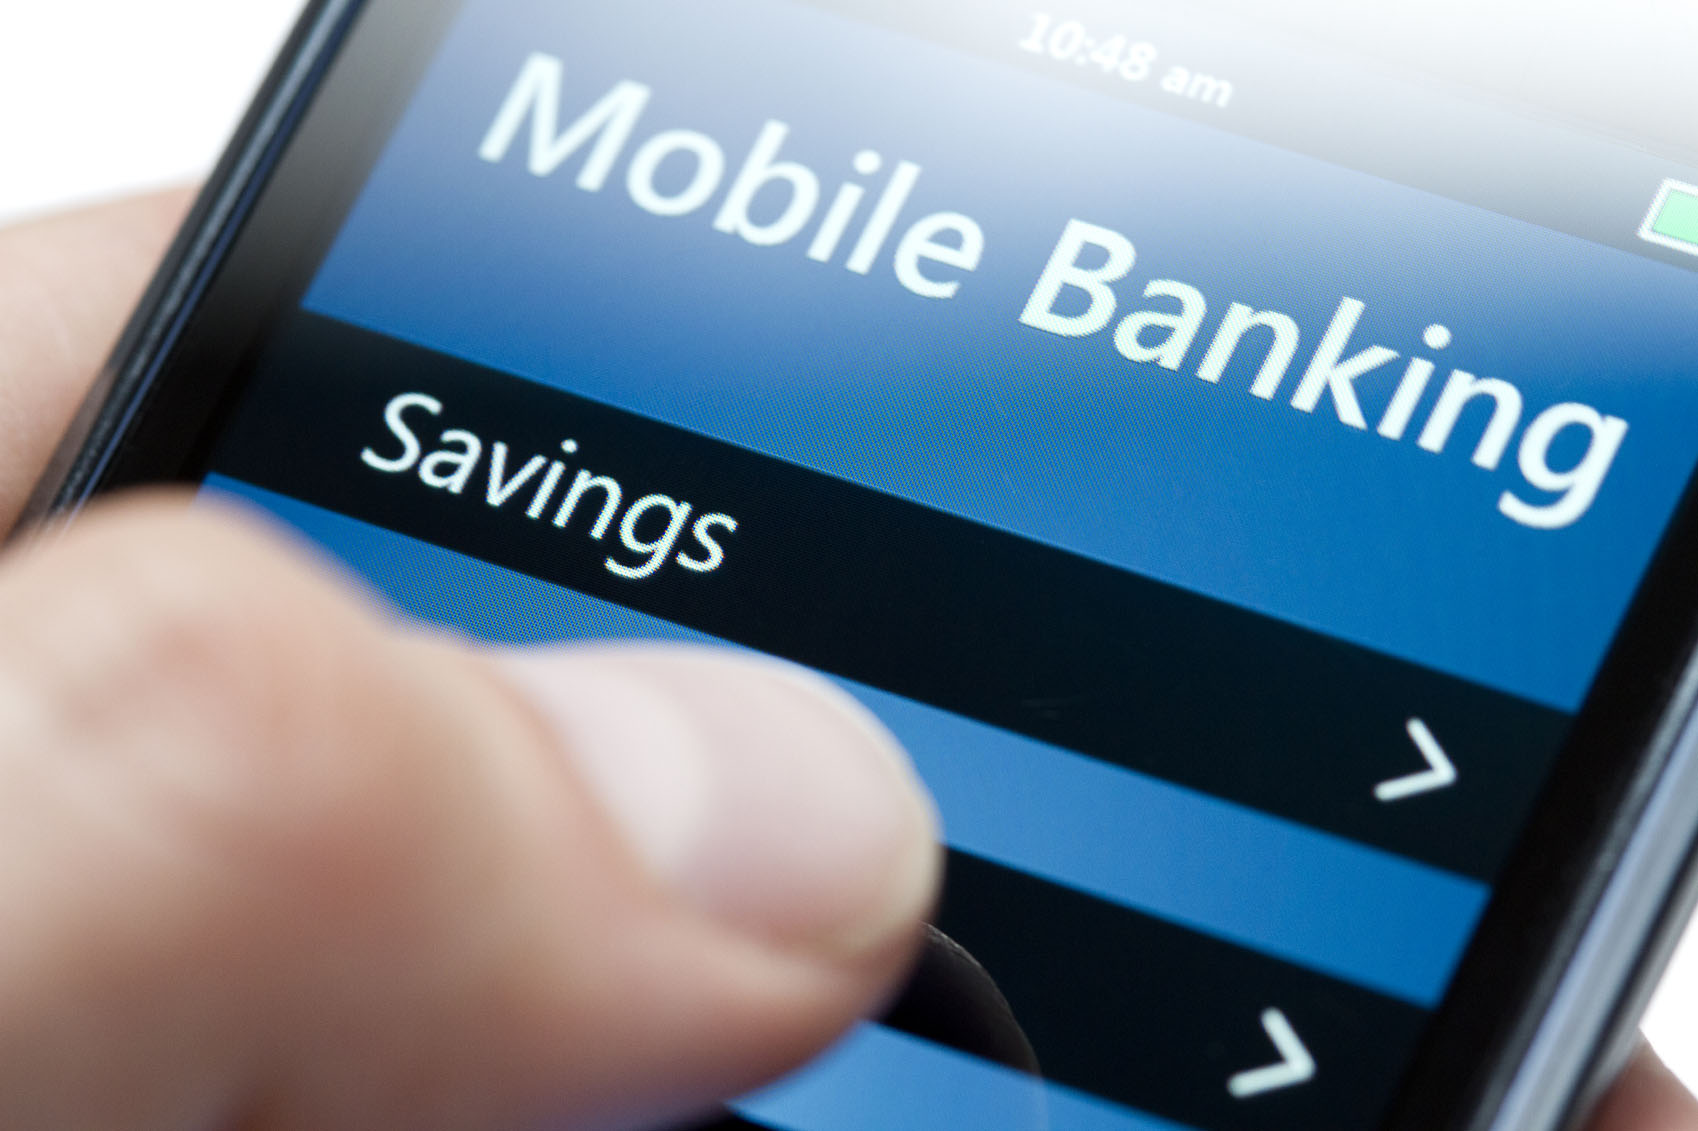 Joint Development Bank (JDB) has announced plans to offer a mobile banking app to its customers. The banking app will provide customers with a high-tech money transfer system and e-commerce or online banking system, to ensure customers can access convenient, safe and less time-consuming banking services in 2017.